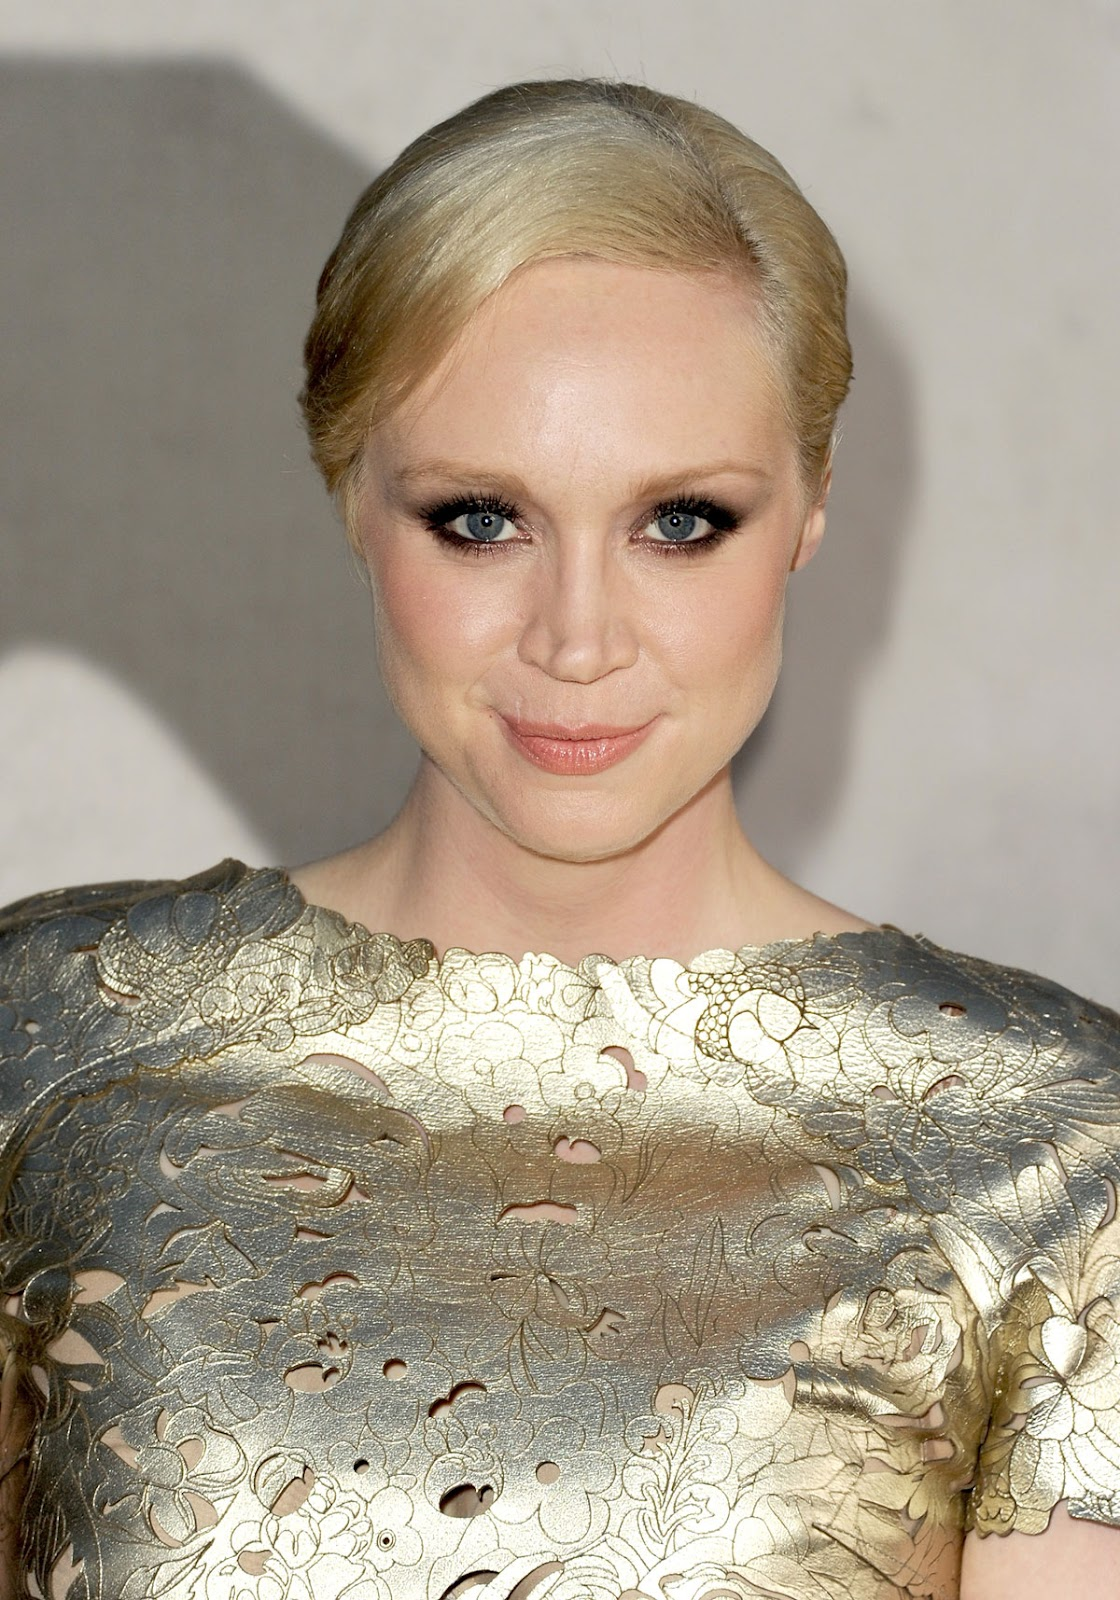 Brienne of tarth actress nude